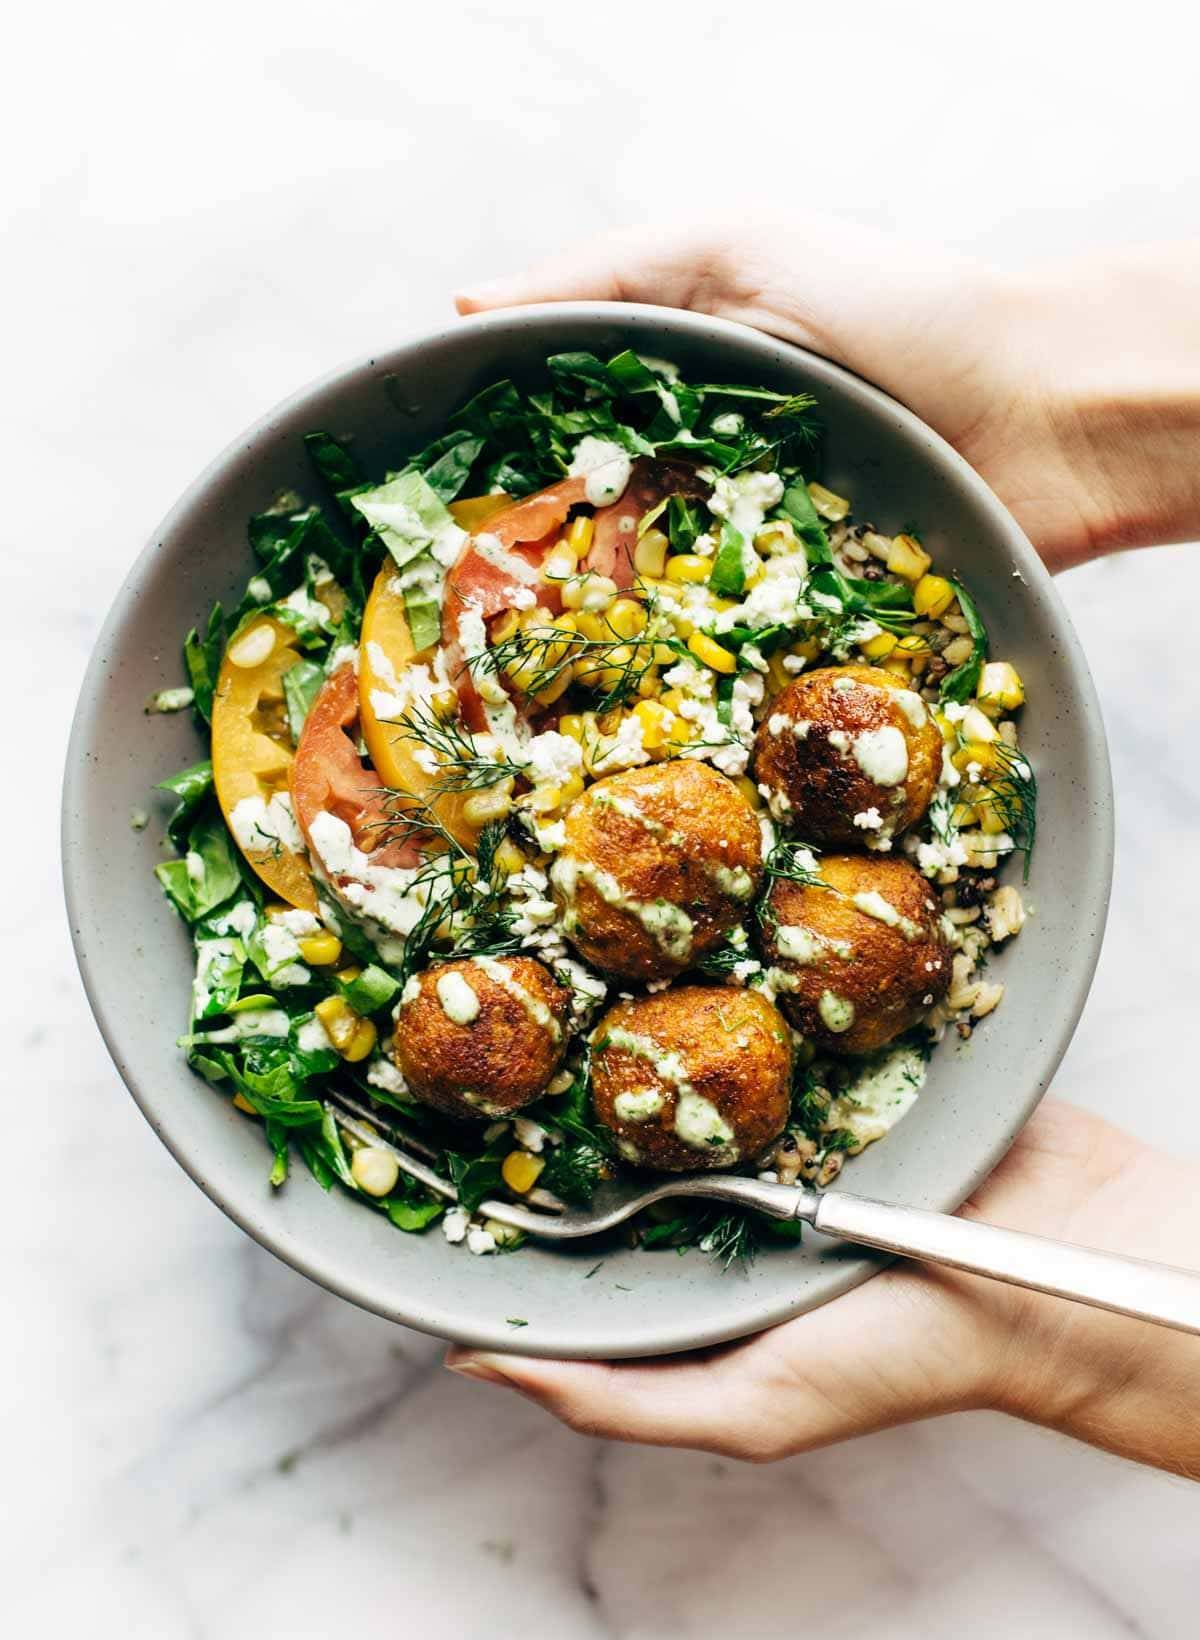 Summer Bliss Bowls with Sweet Potato Falafel and Jalapeño Ranch - you will not believe how easy this 5 ingredient falafel is!   pinchofyum.com